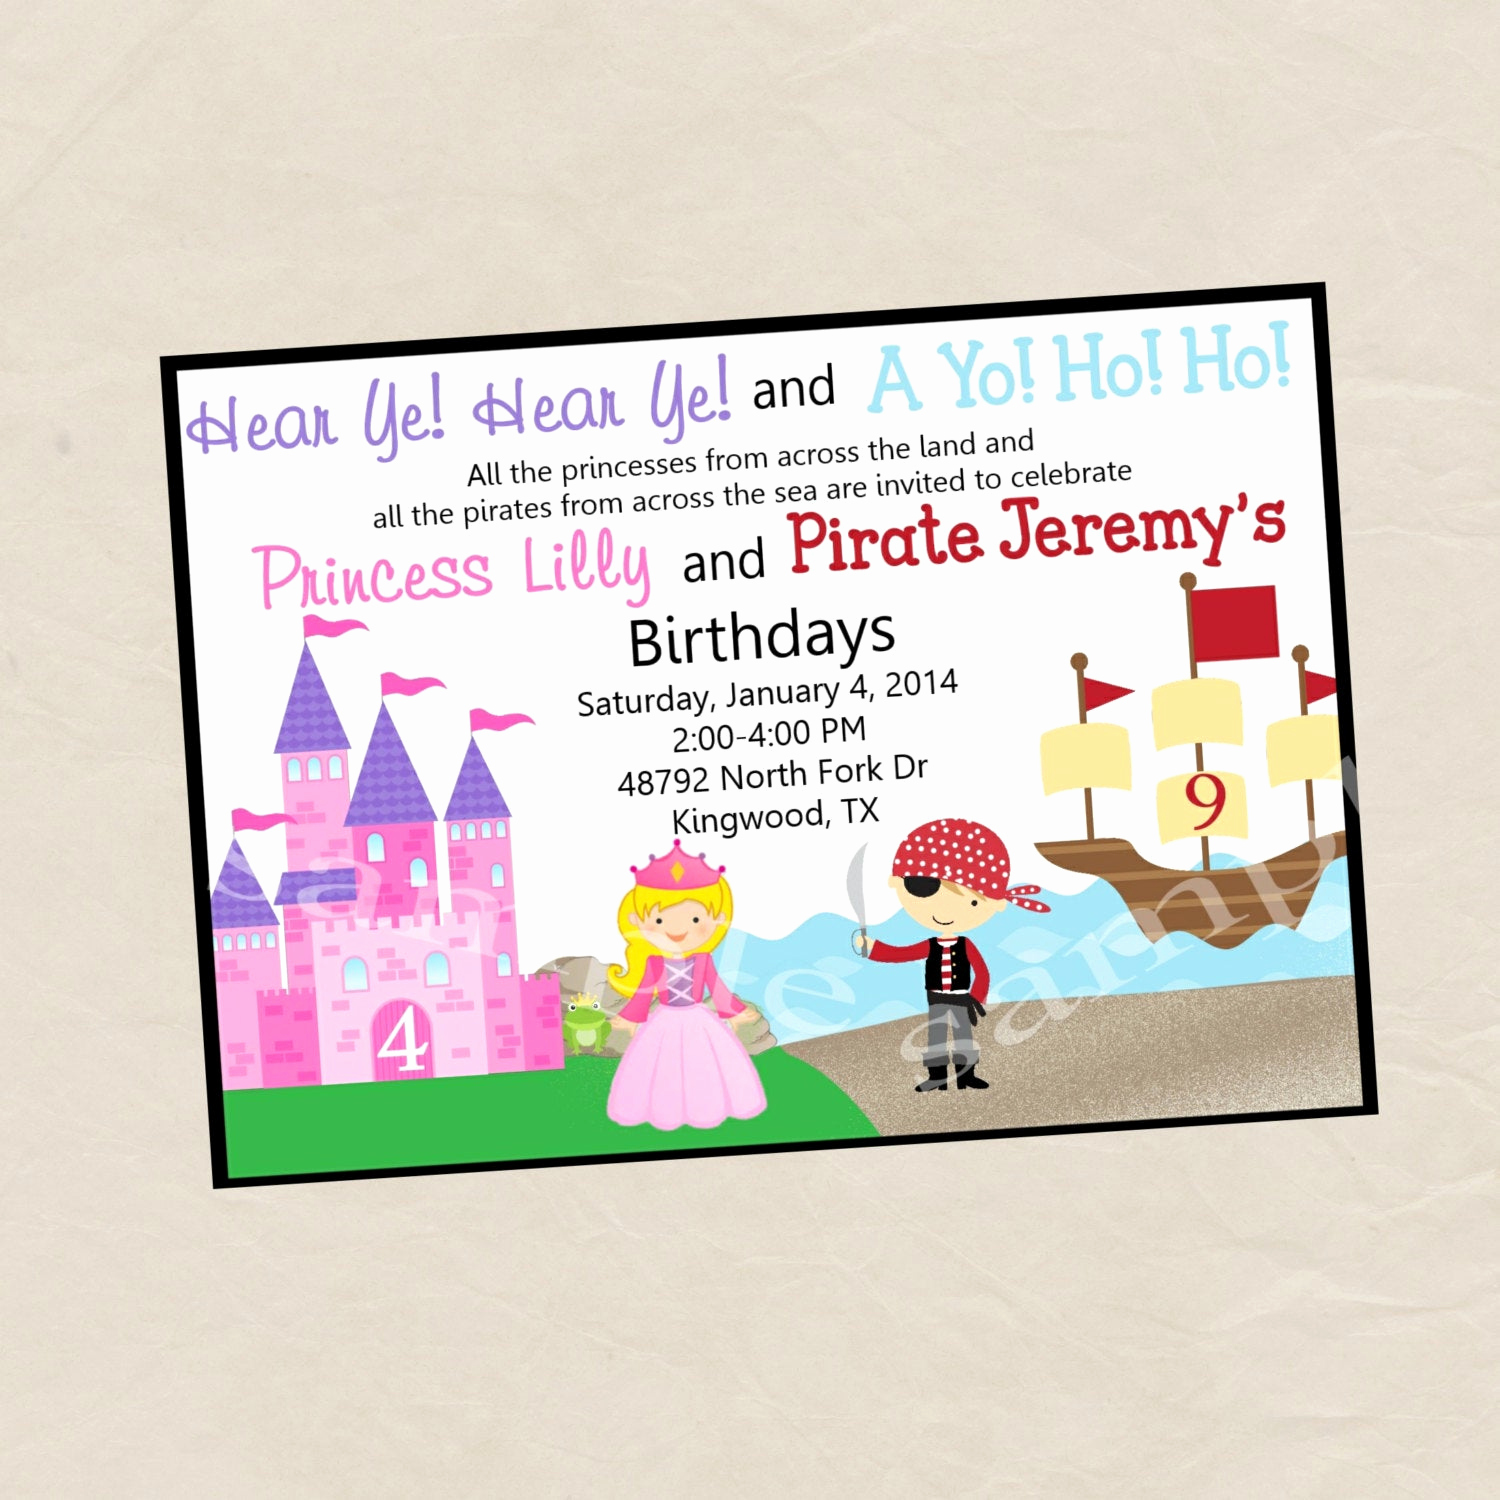 Princess and Pirate Invitation Awesome Princess and Pirate Birthday Party Invitation Digital or